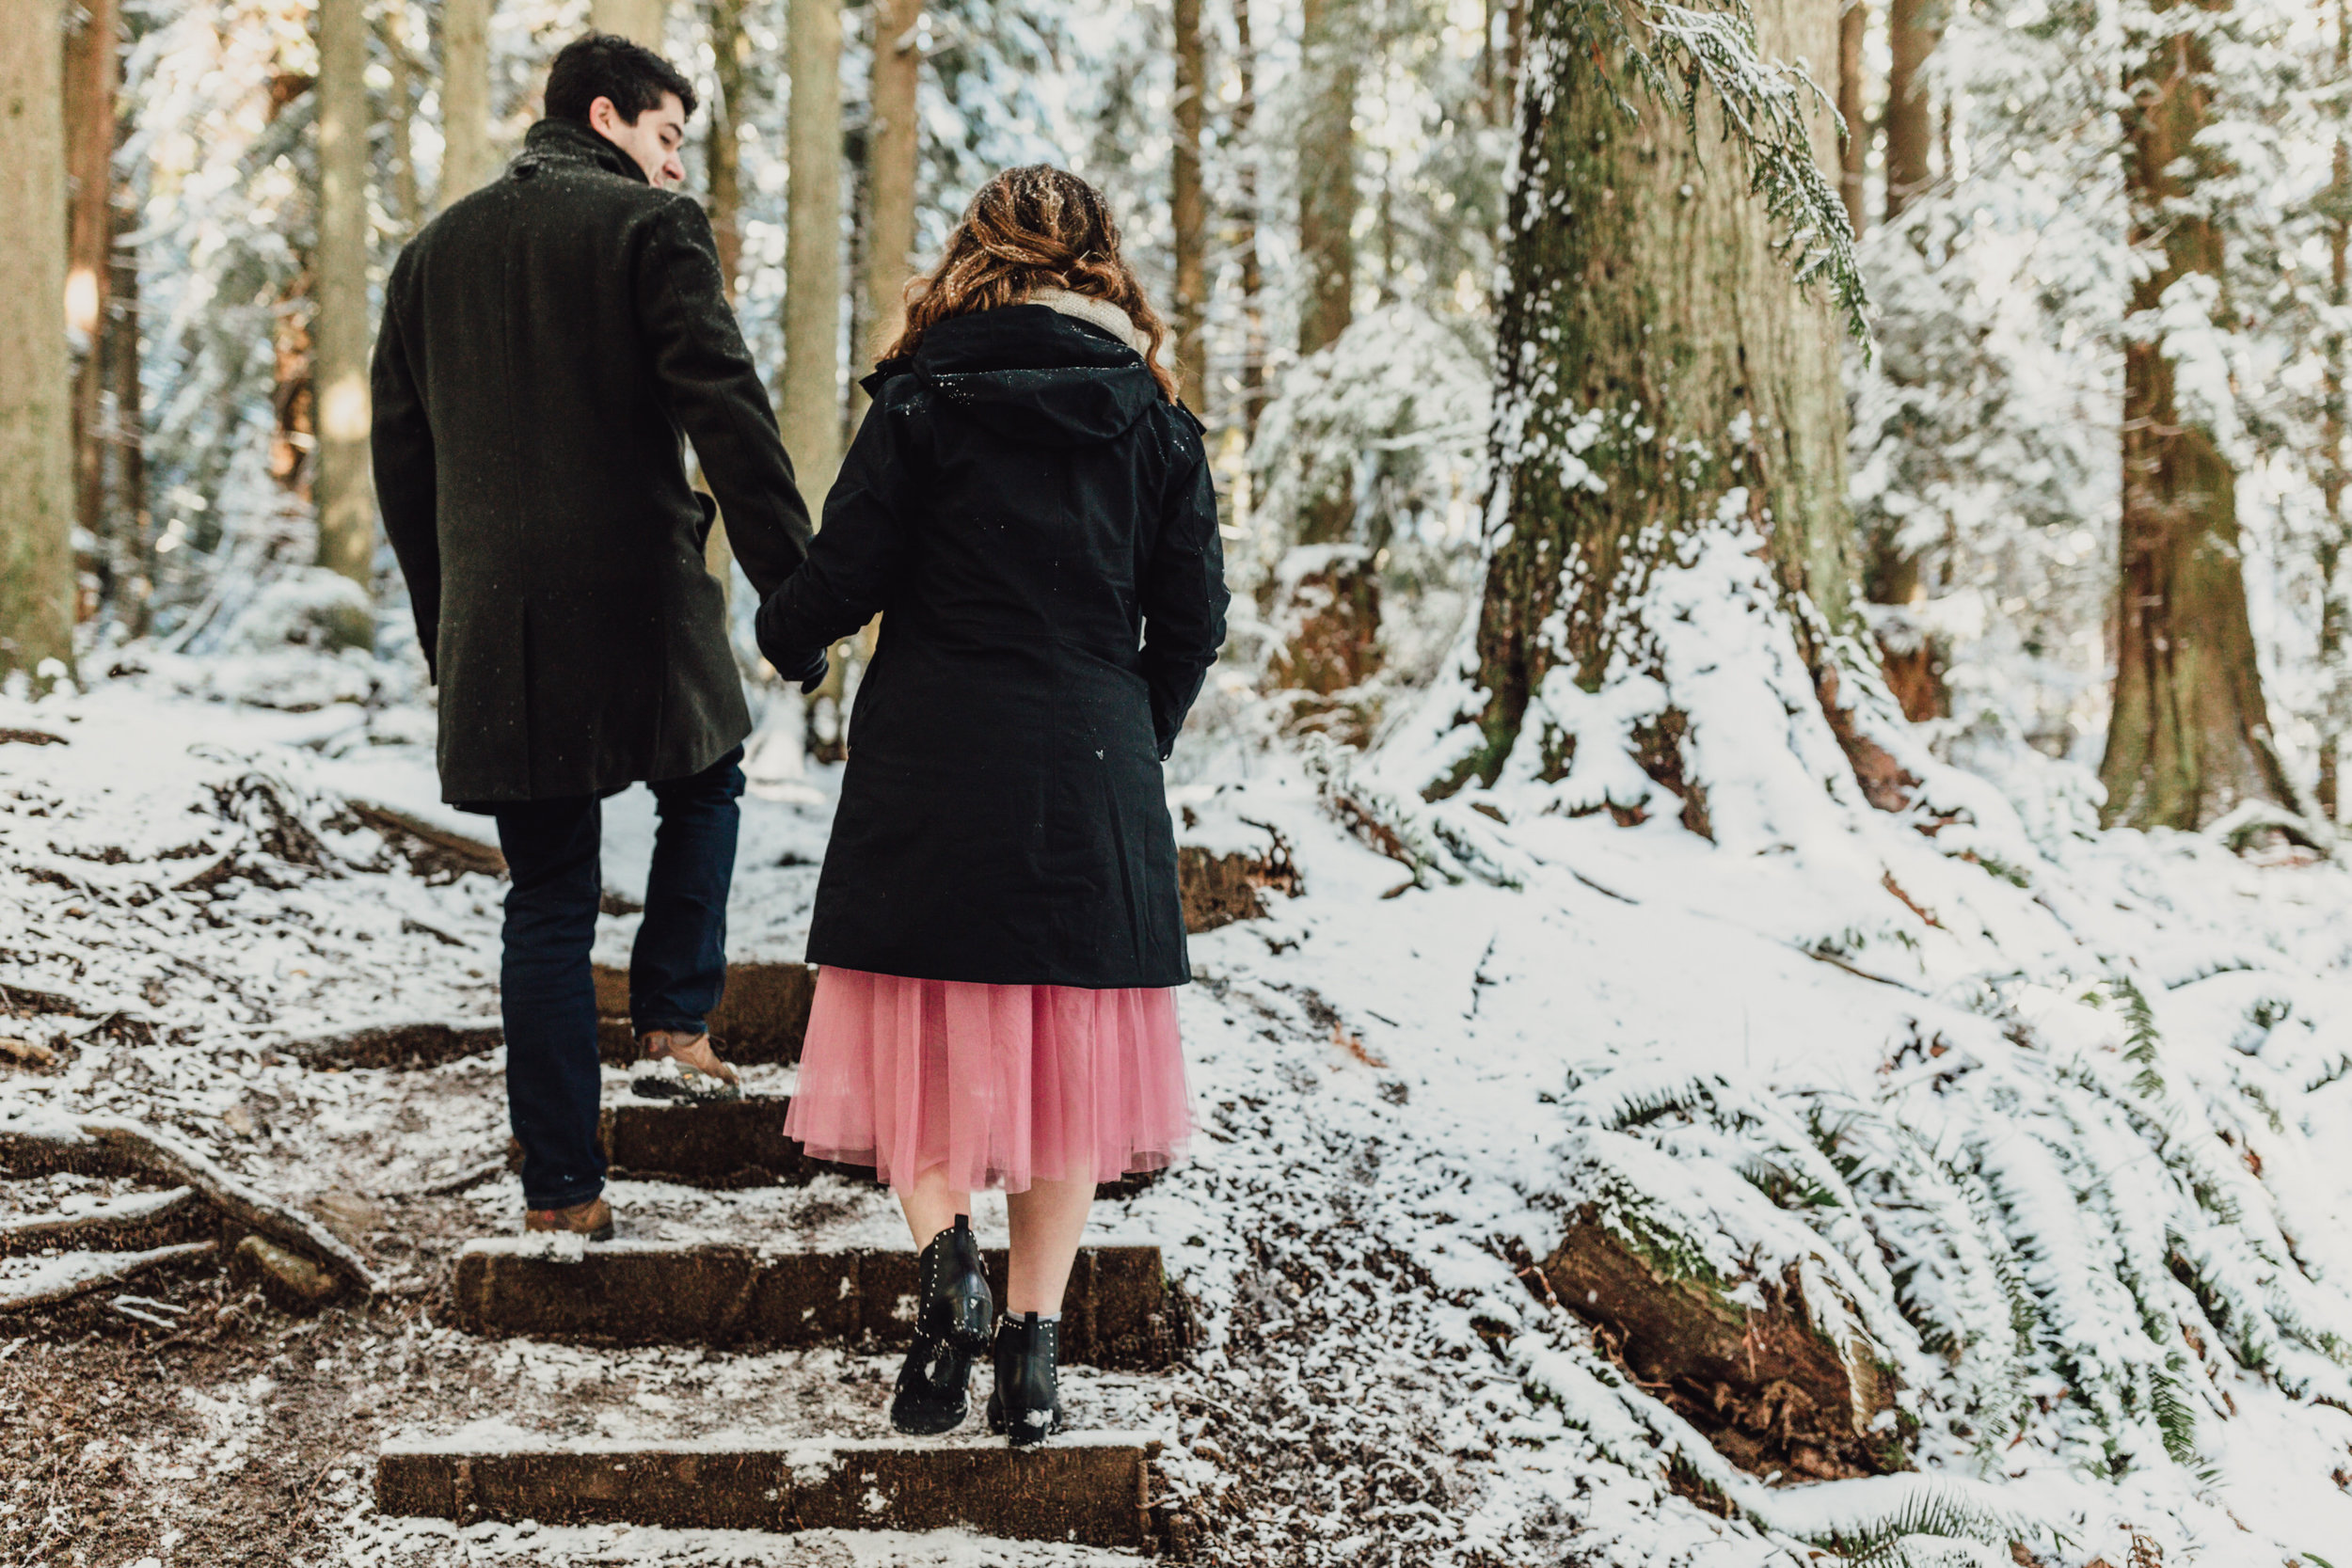 Snowy Engagement Photos - Gibsons Engagement Photos - Sunshine Coast Engagement Photos - Vancouver Wedding Photographer and Videographer - Jennifer Picard Photography115.JPG